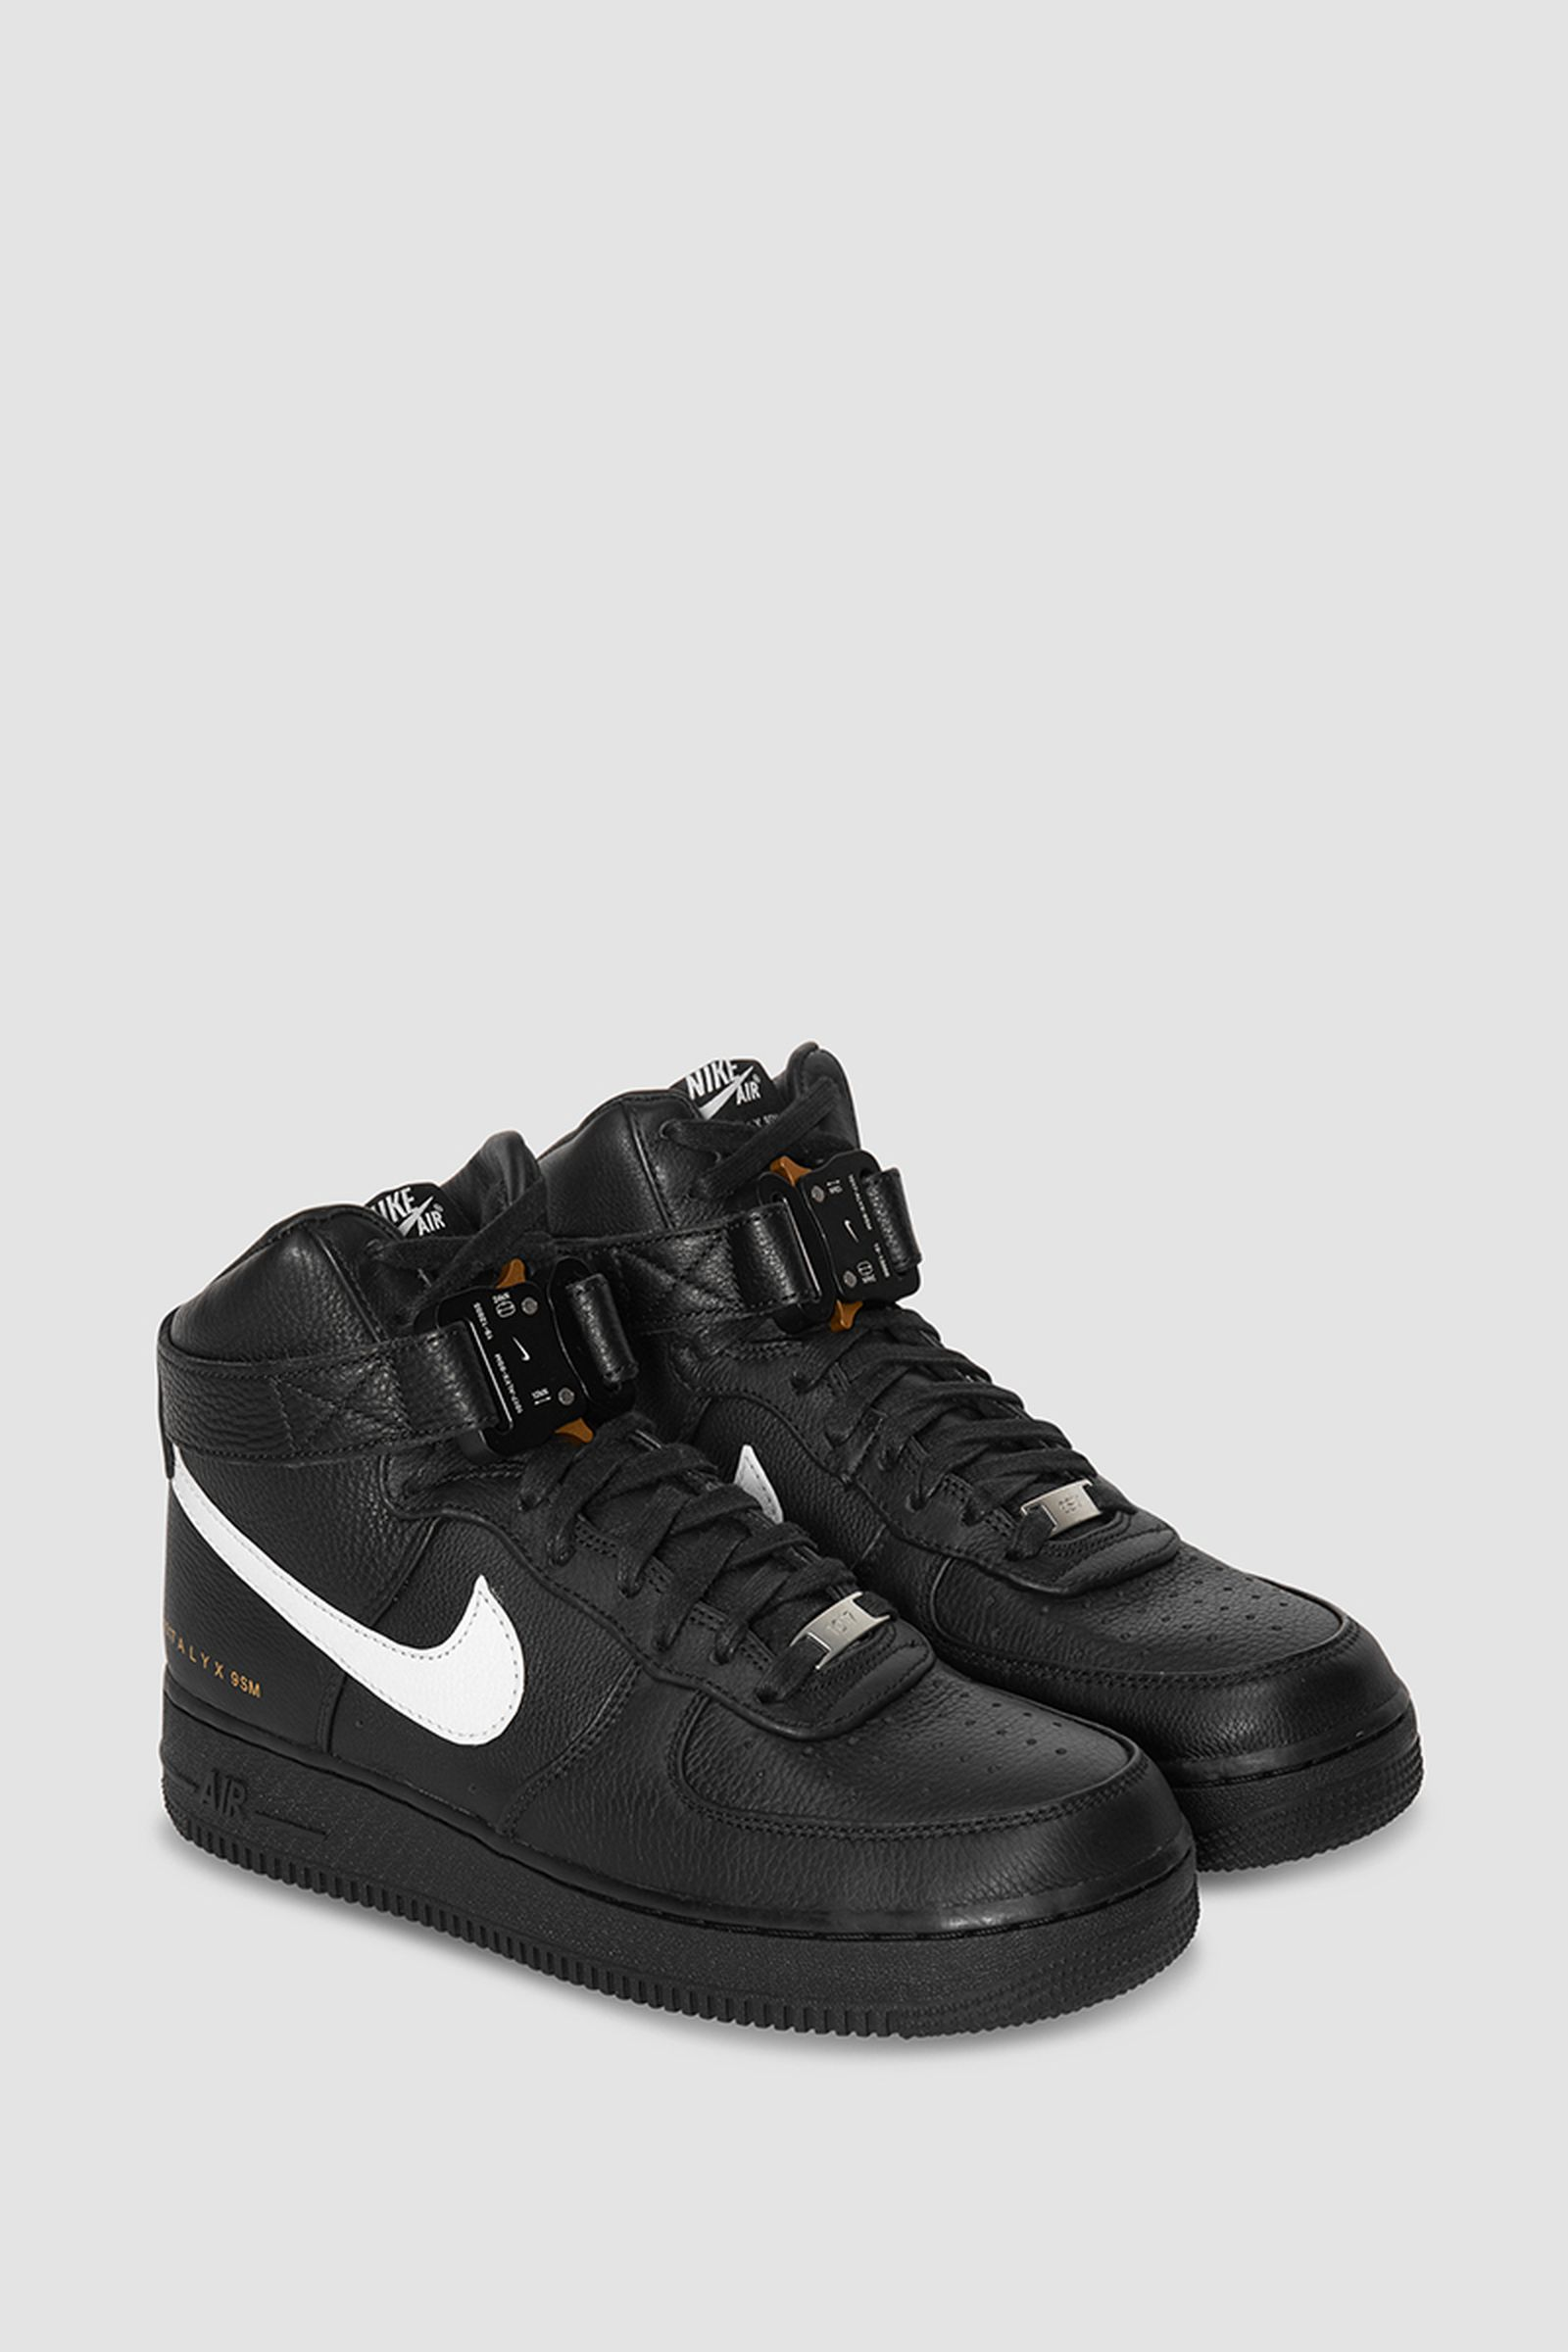 alyx-nike-air-force-1-high-release-date-price-09